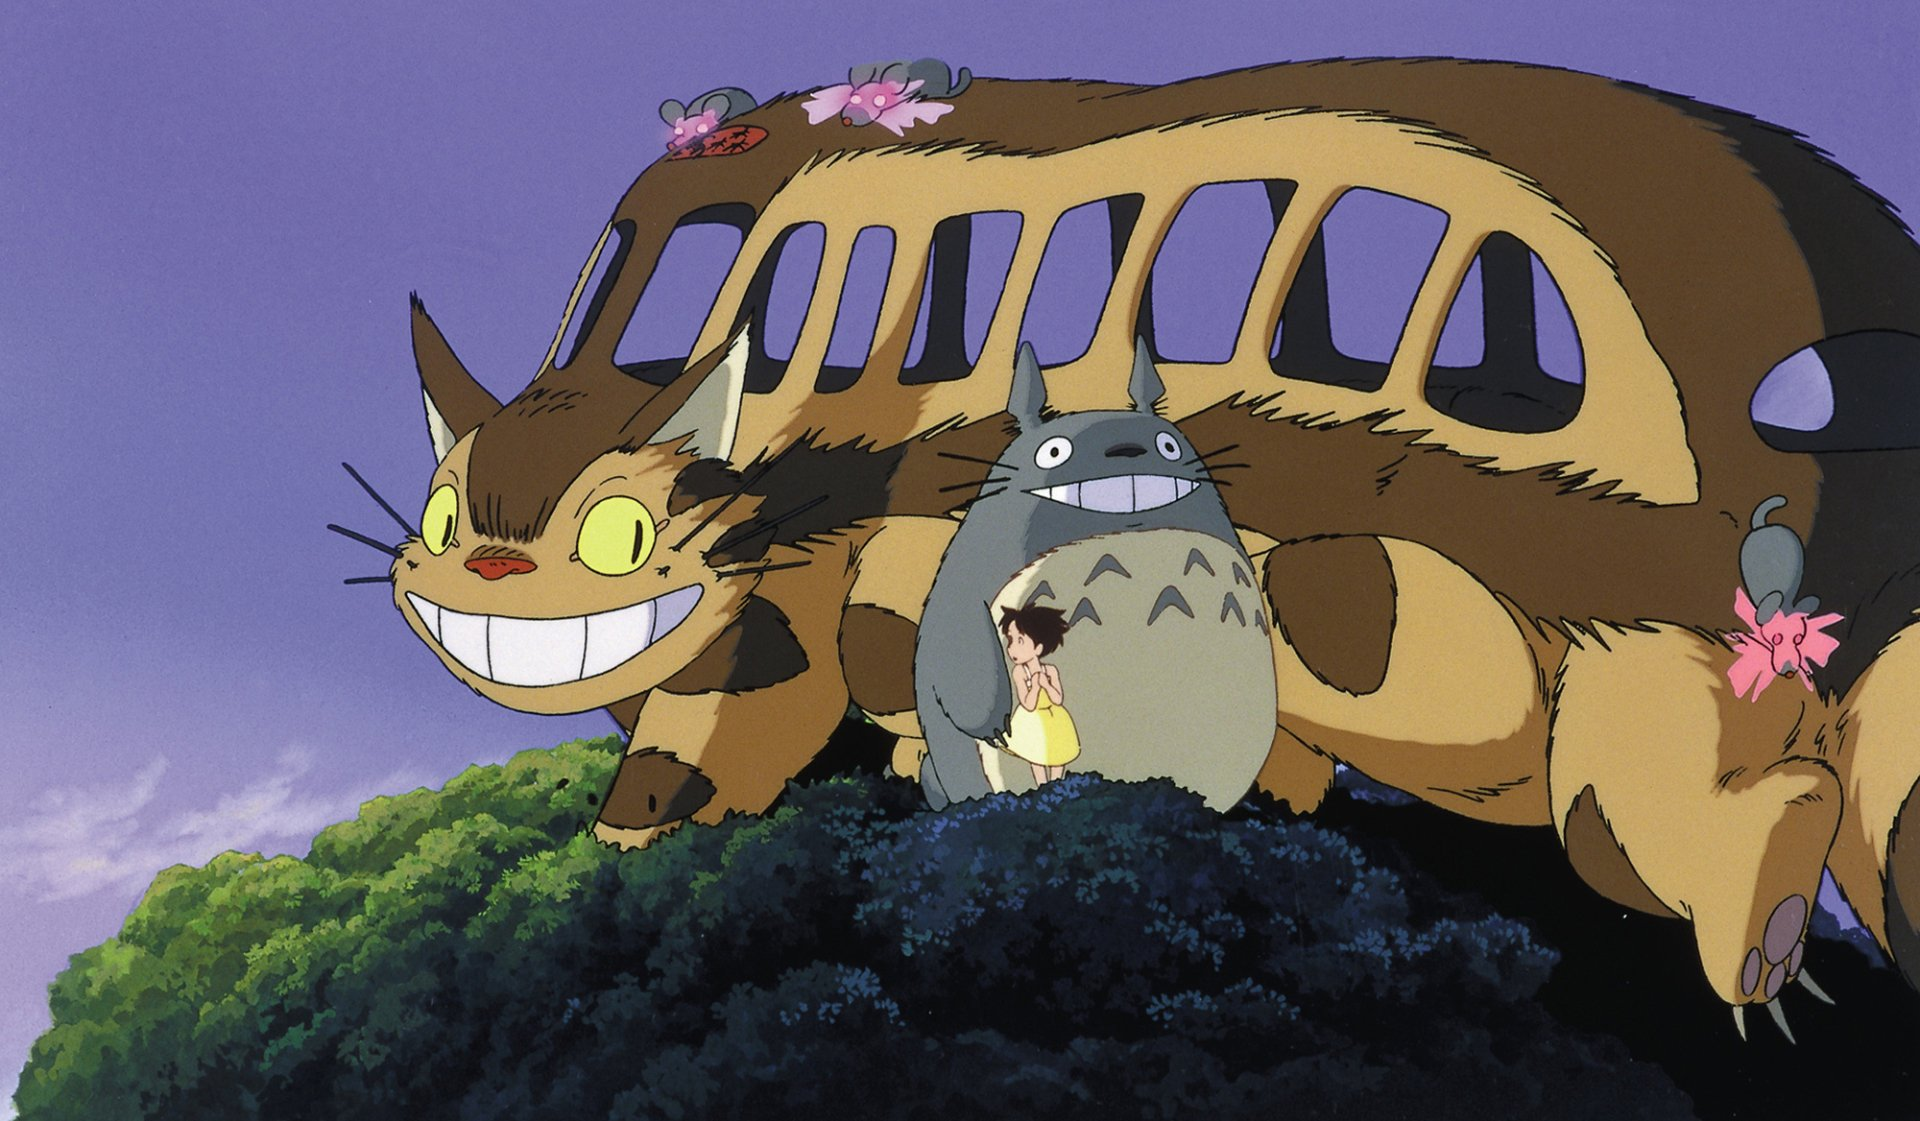 Movie - My Neighbor Totoro  Catbus (My Neighbor Totoro) Totoro (My Neighbor Totoro) Satsuki Kusakabe Wallpaper